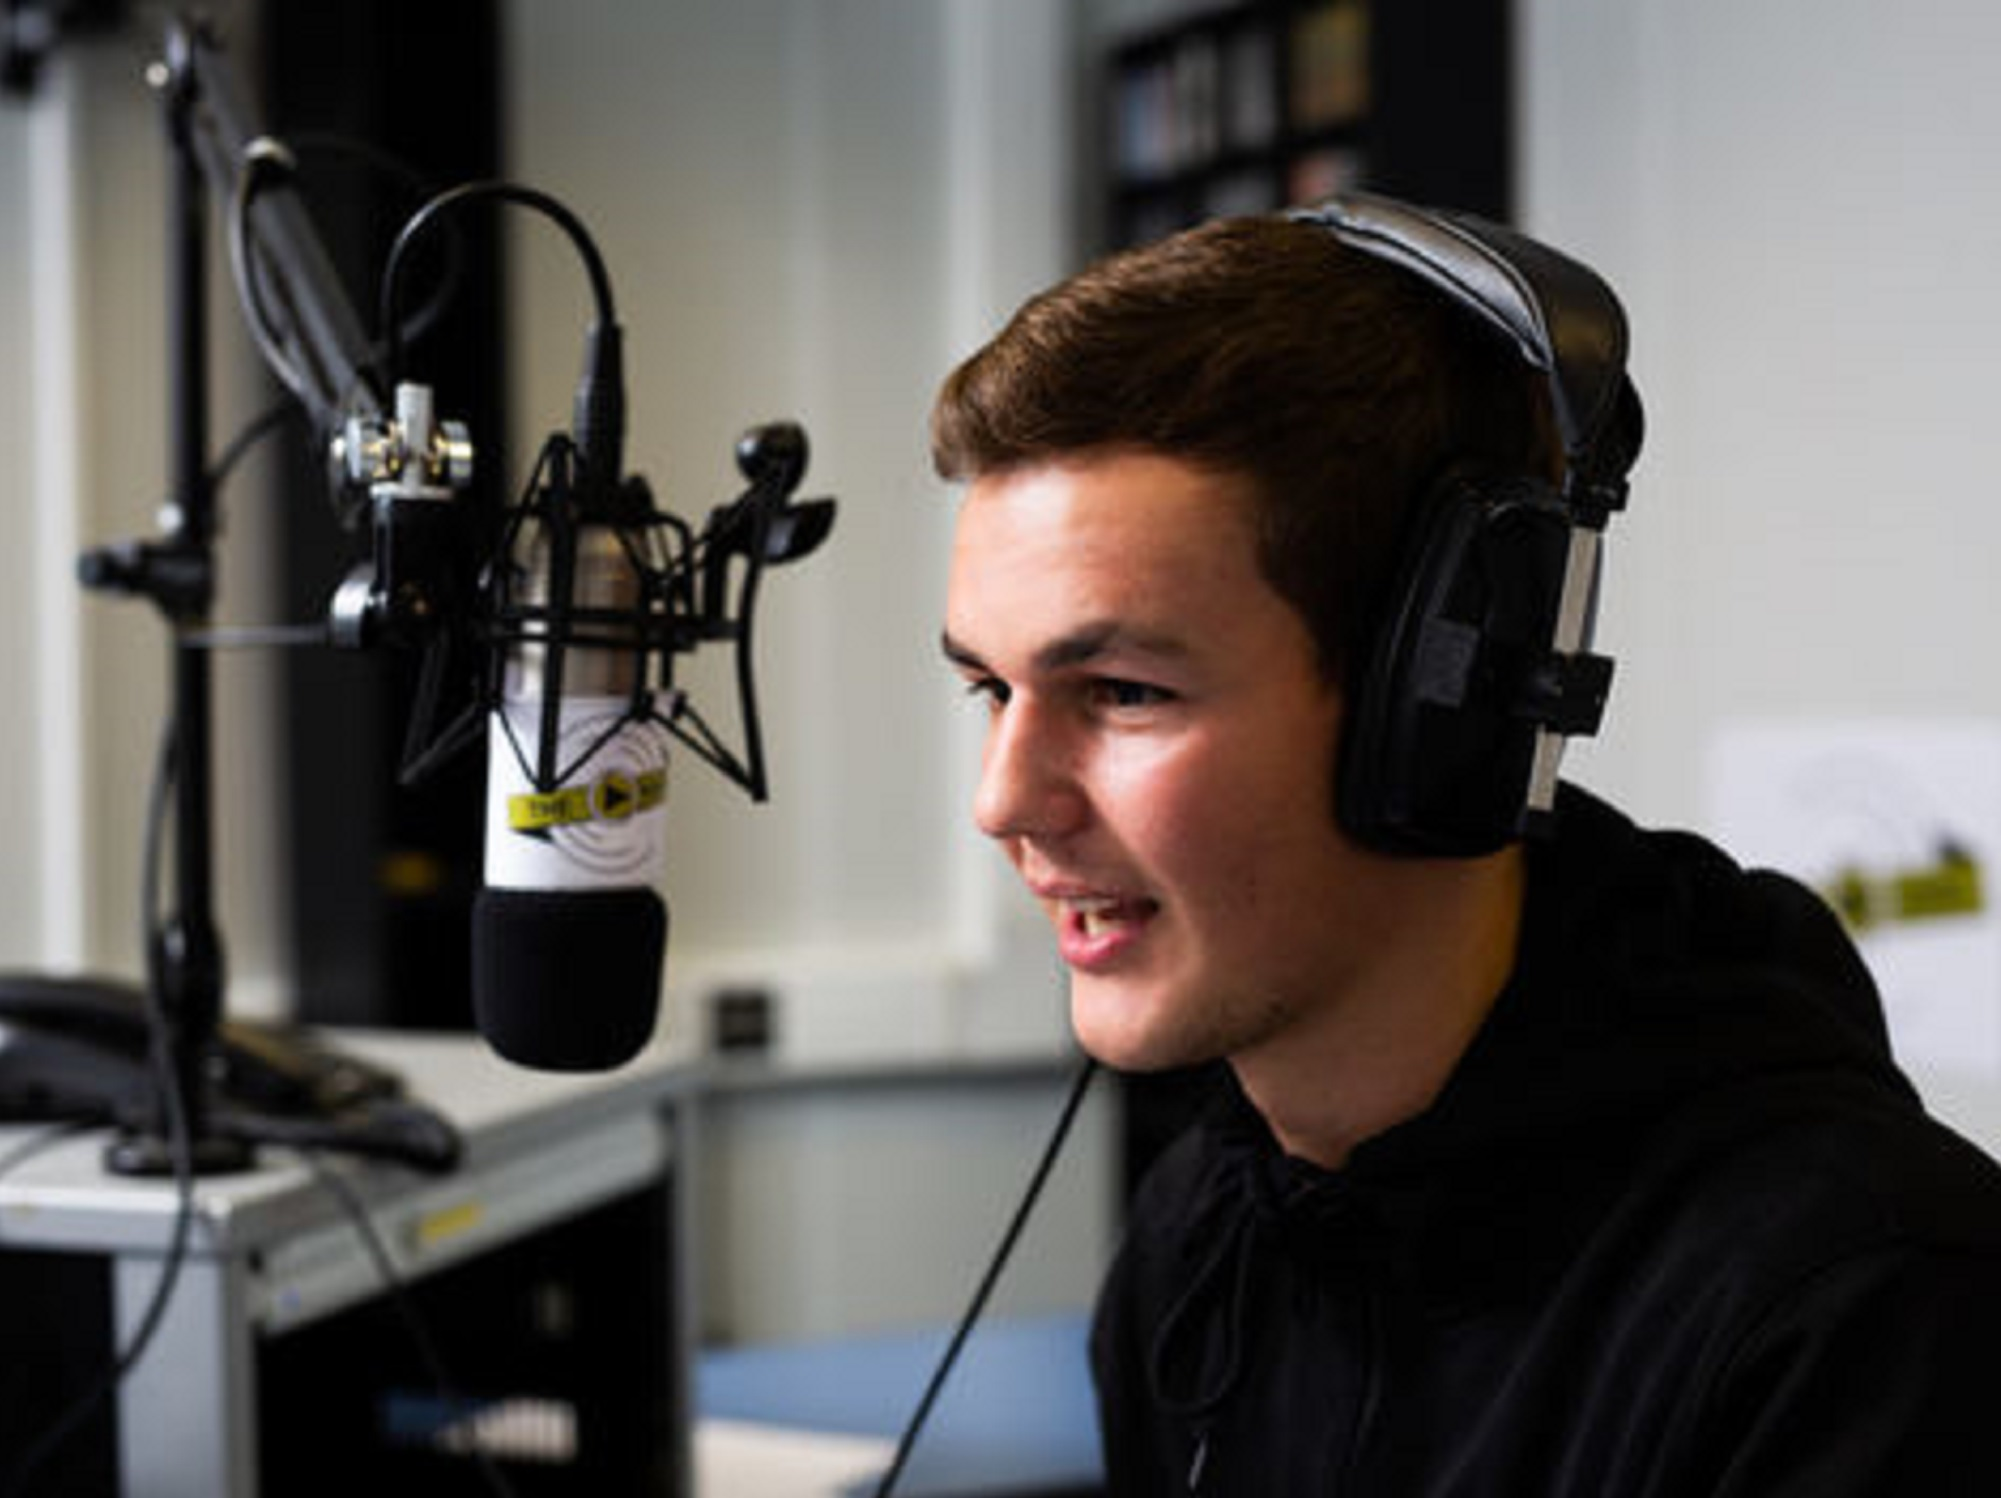 A University of Derby journalism student using a microphone